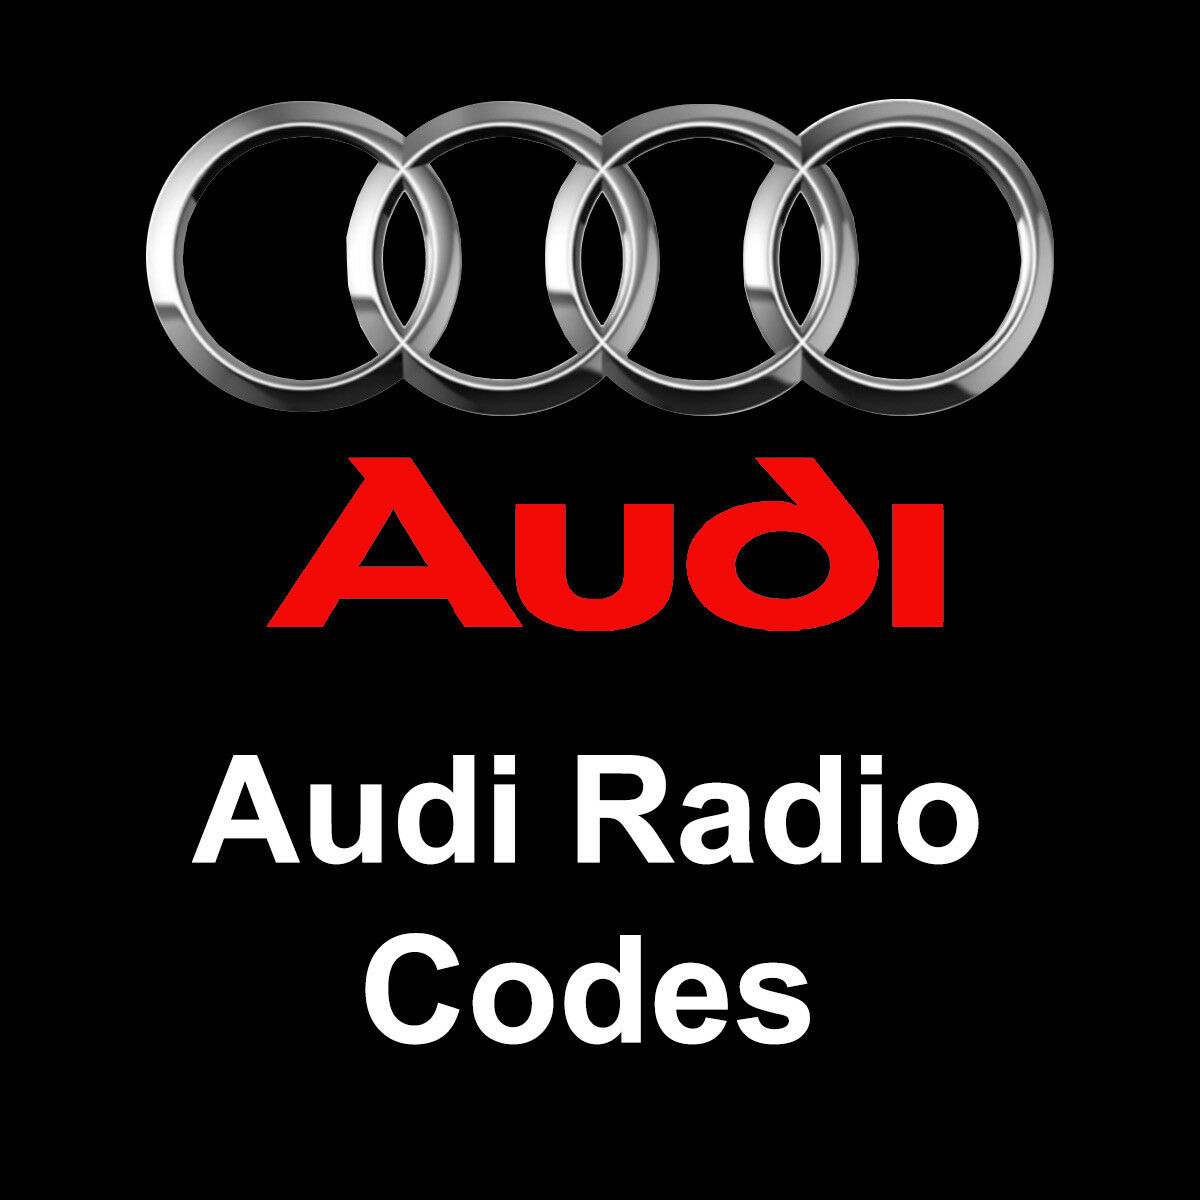 AUDI RADIO CODE SERVICE VIA SERIAL NUMBER ALL MODELS COVERED